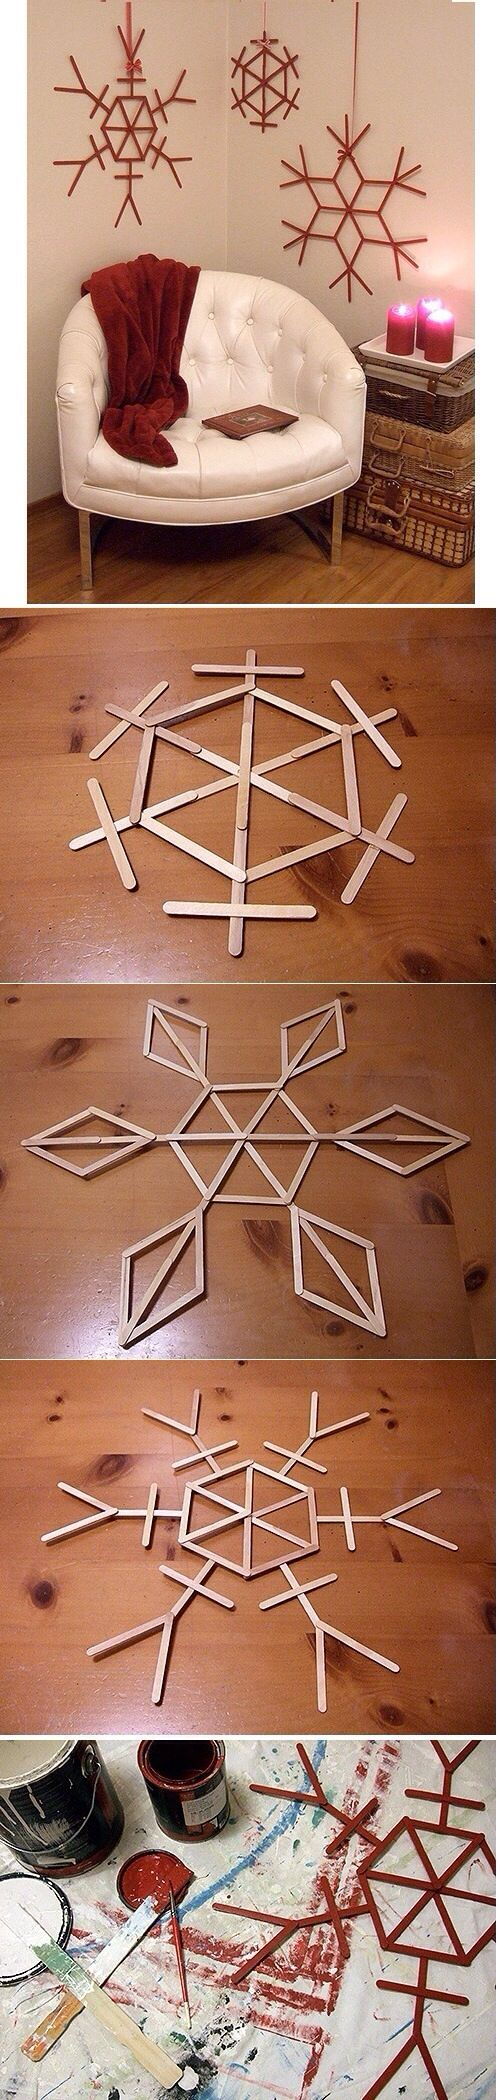 Painted Popsicle stick snow flakes (no tutorial)